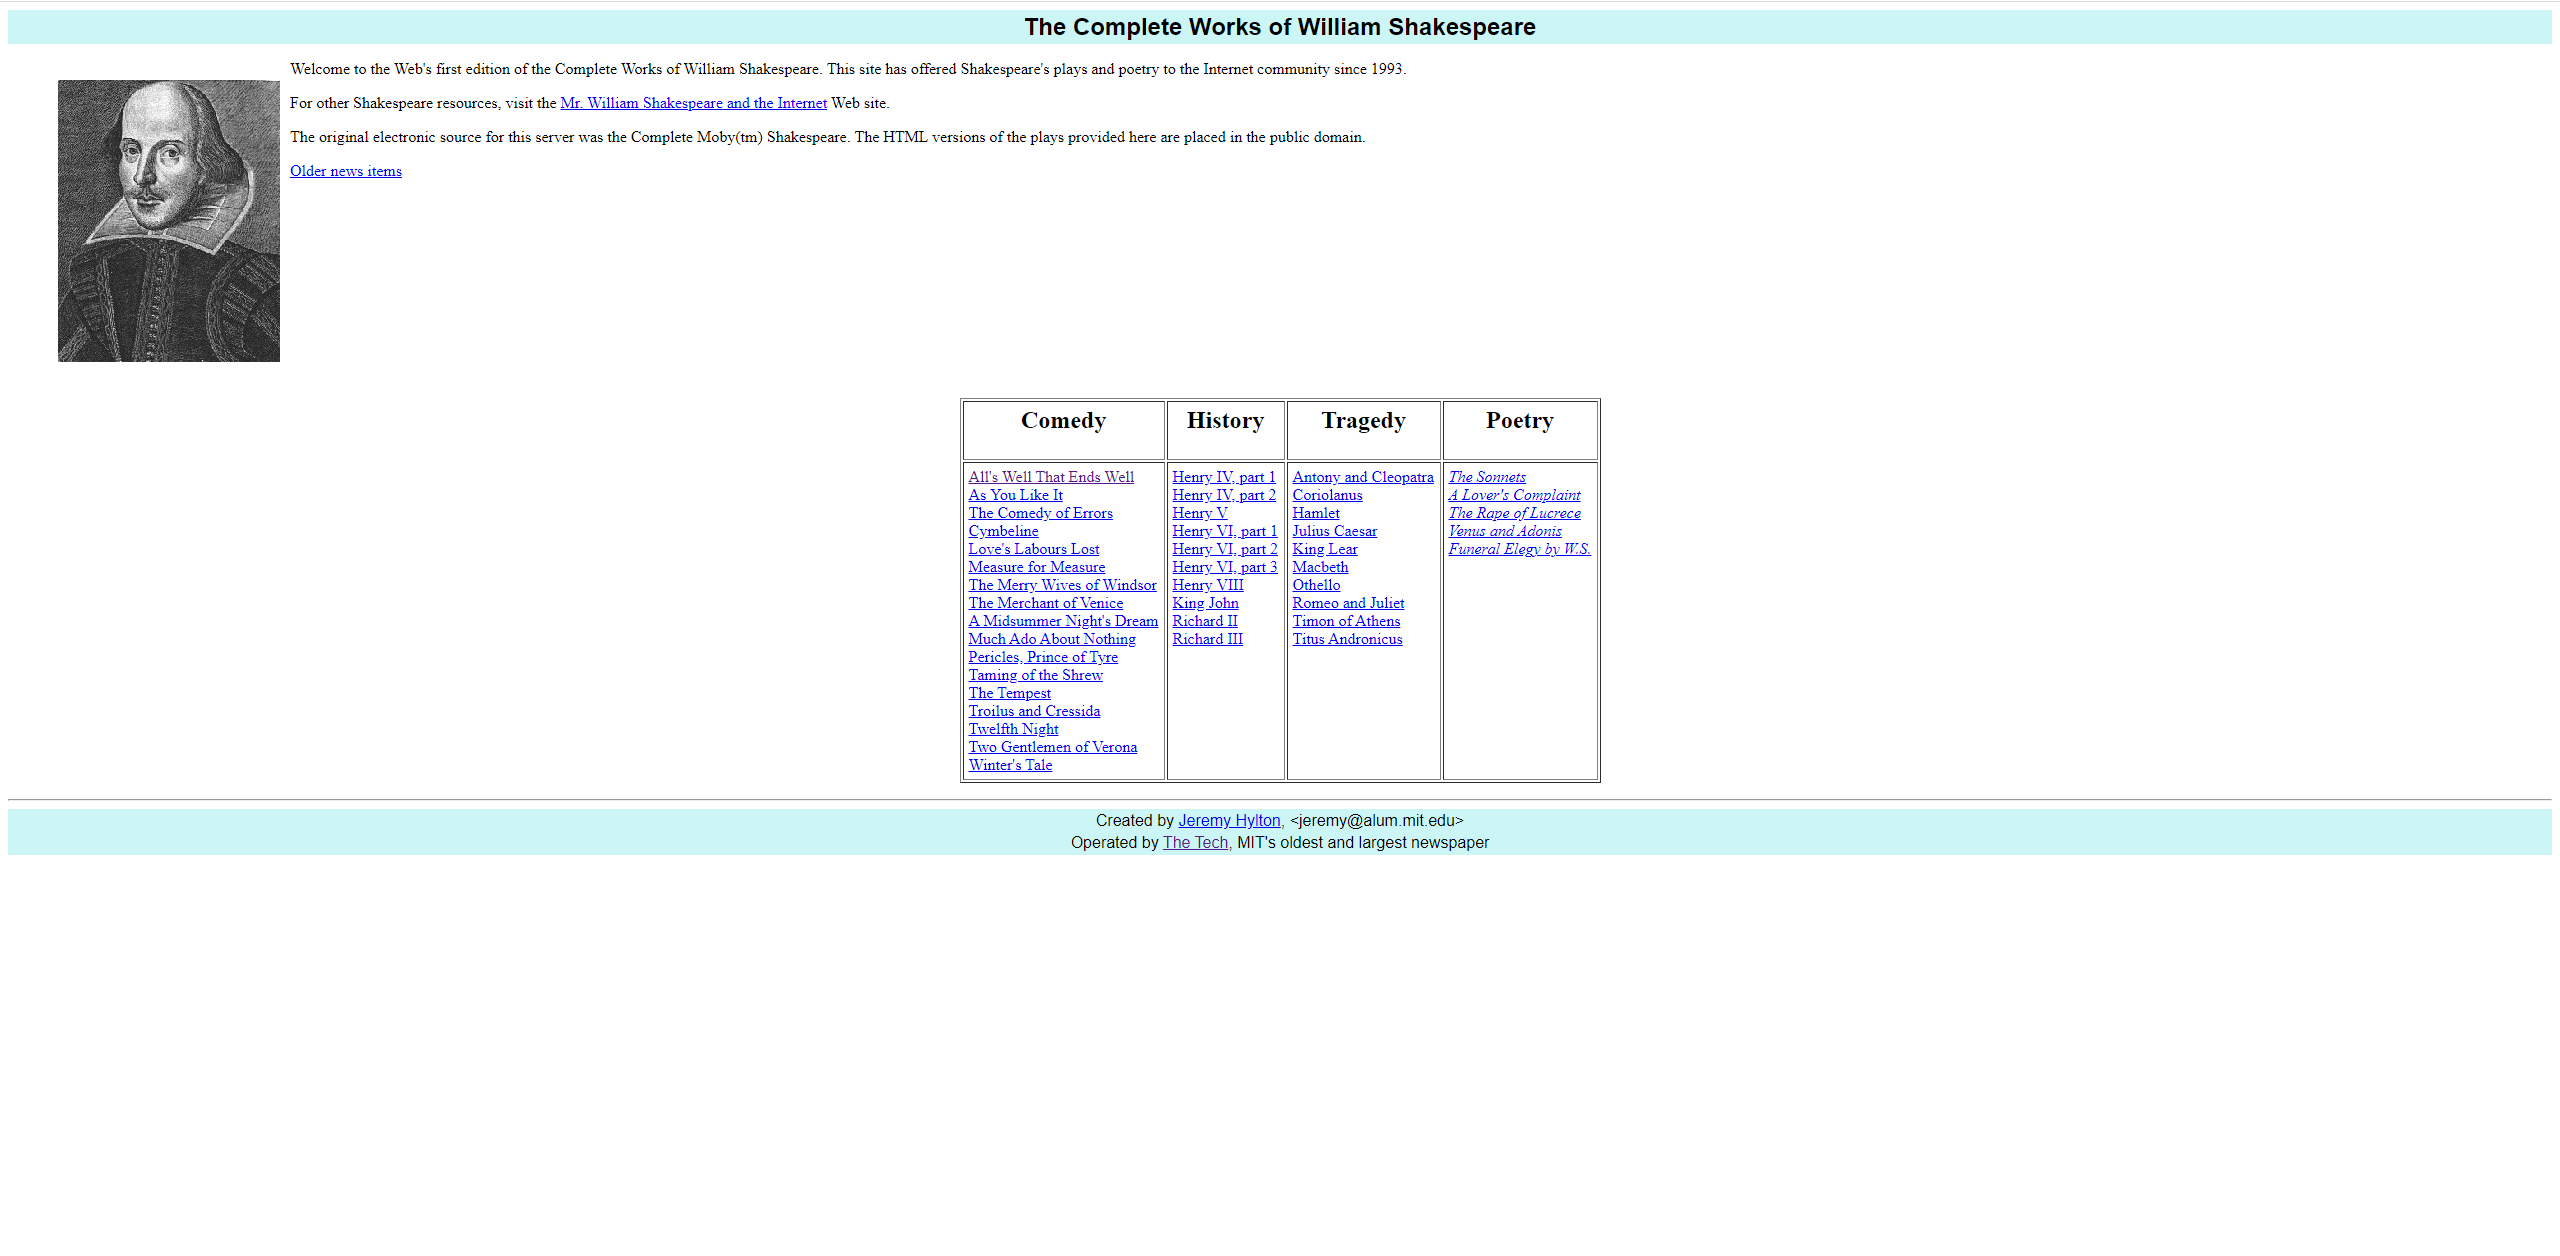 Screenshot of the homepage of The Complete Works of William Shakespeare